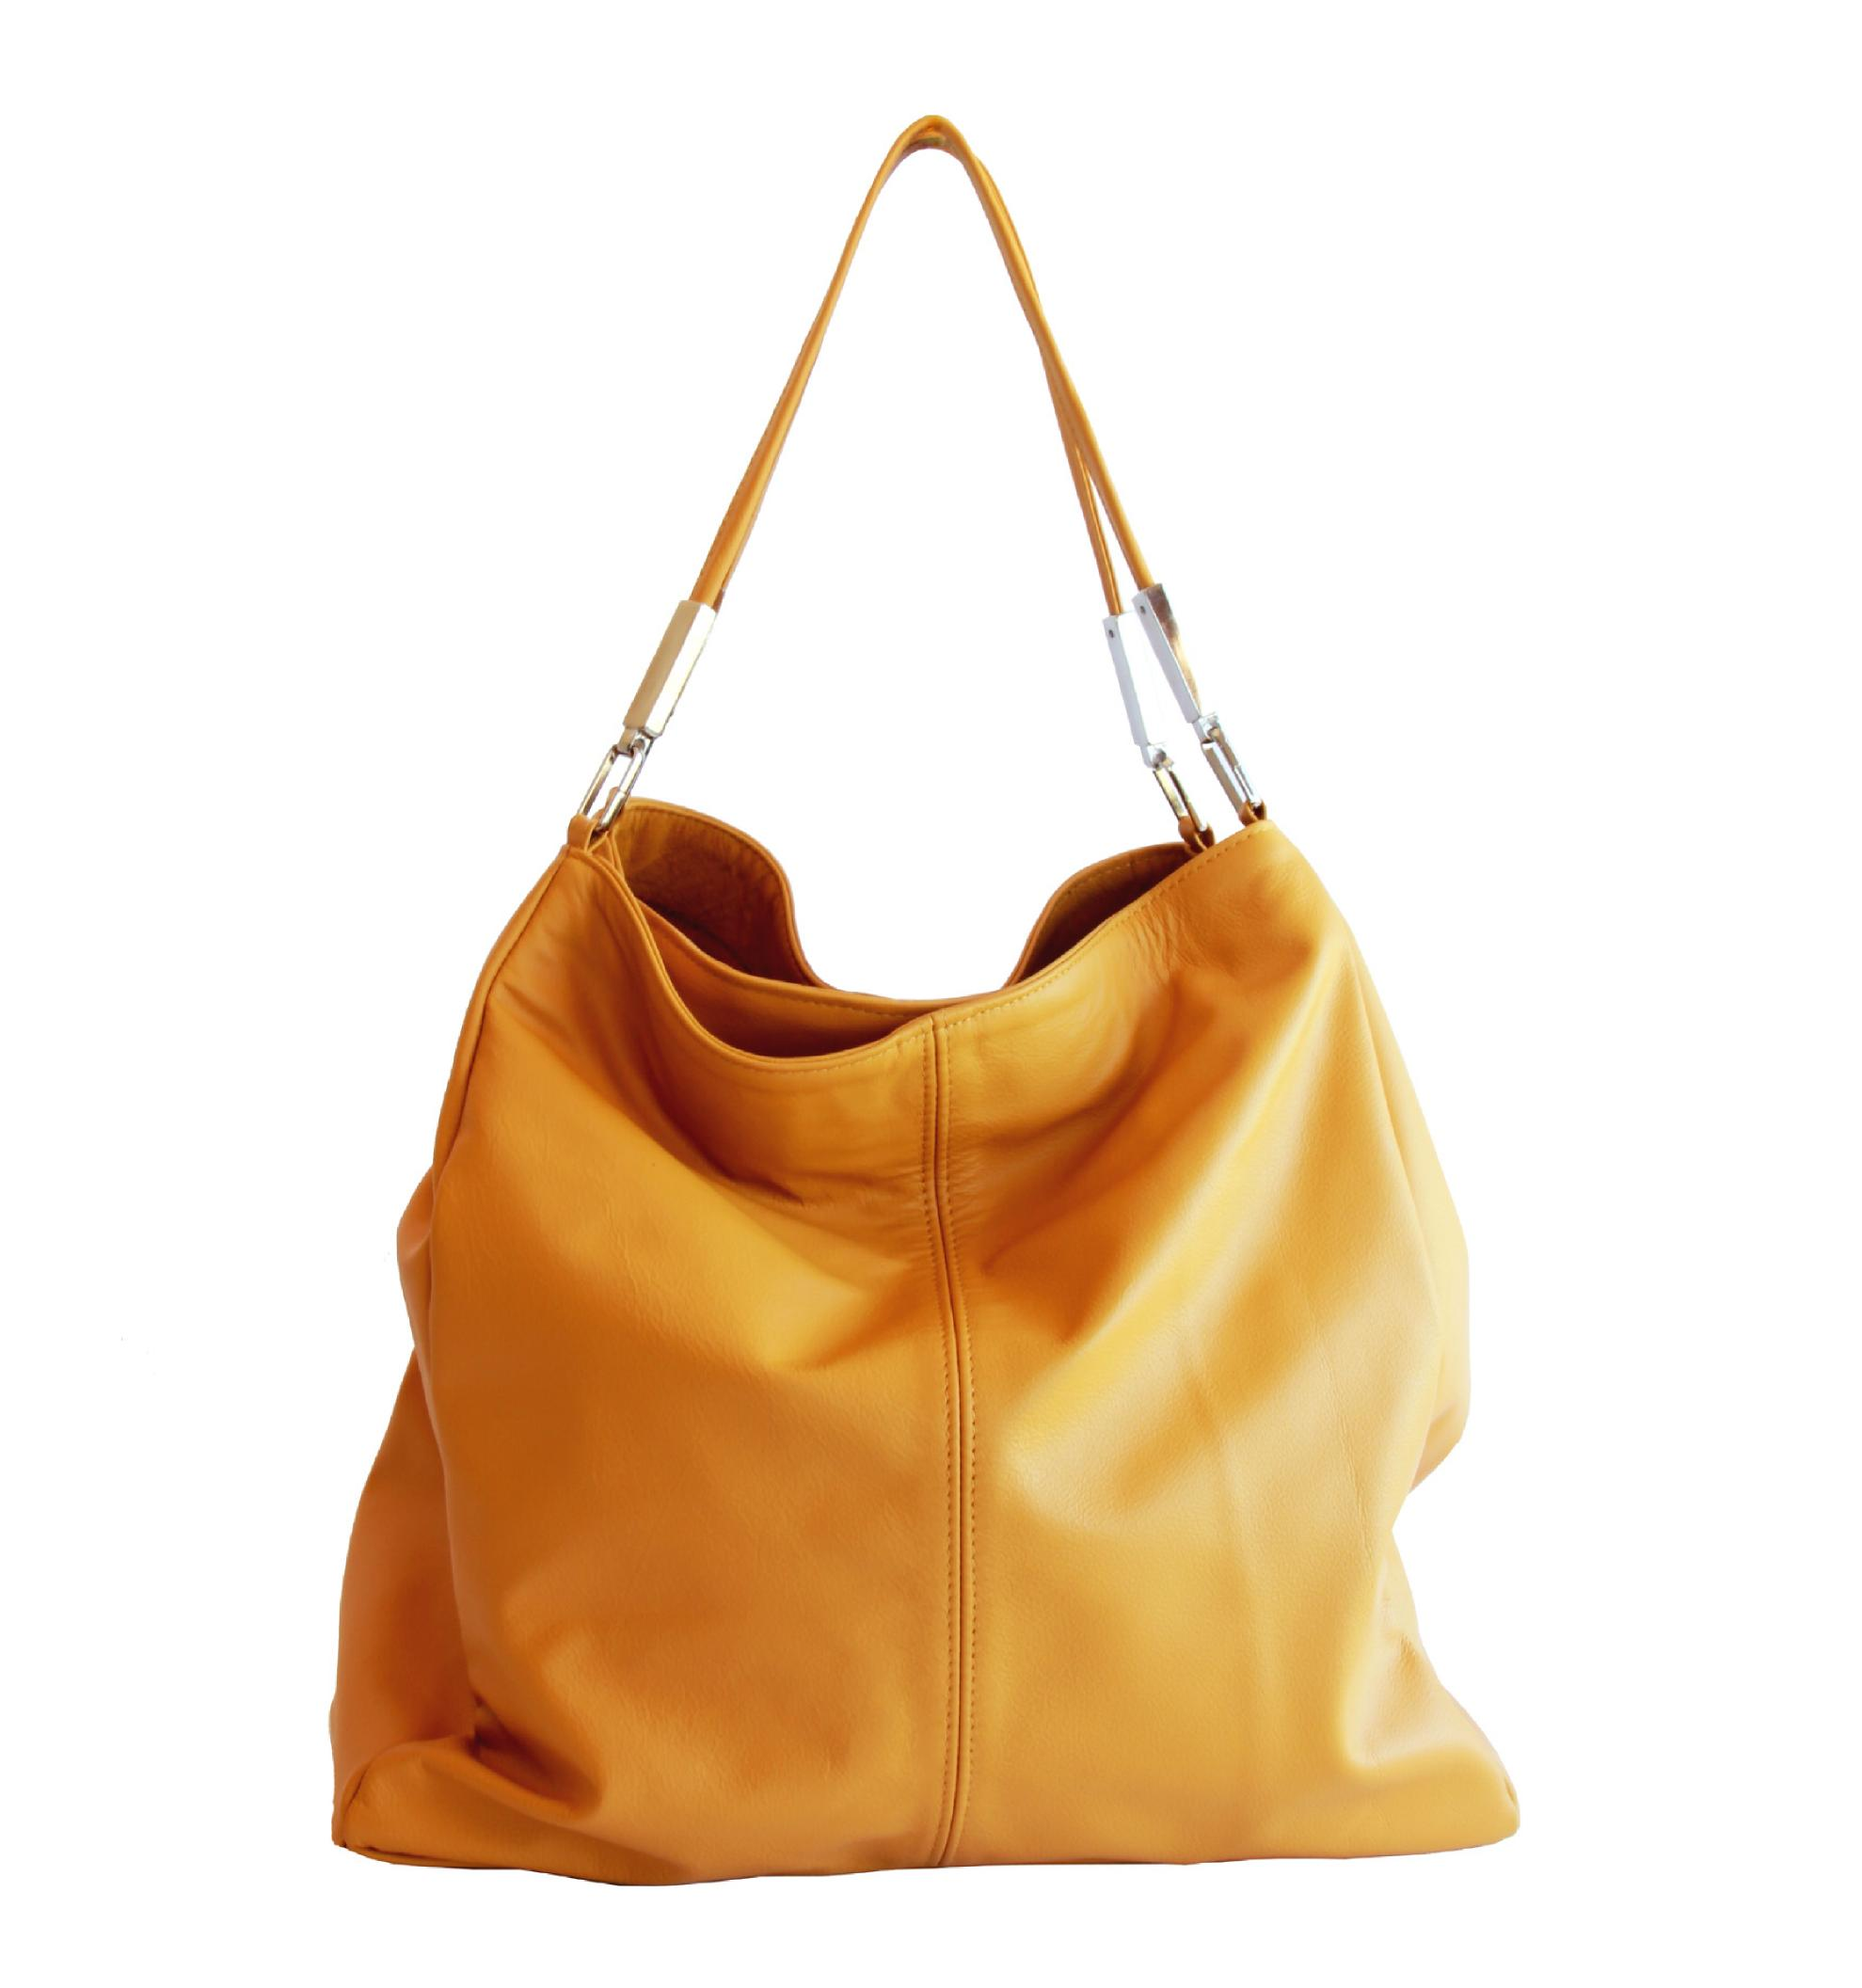 Squaremoon Bags With Style